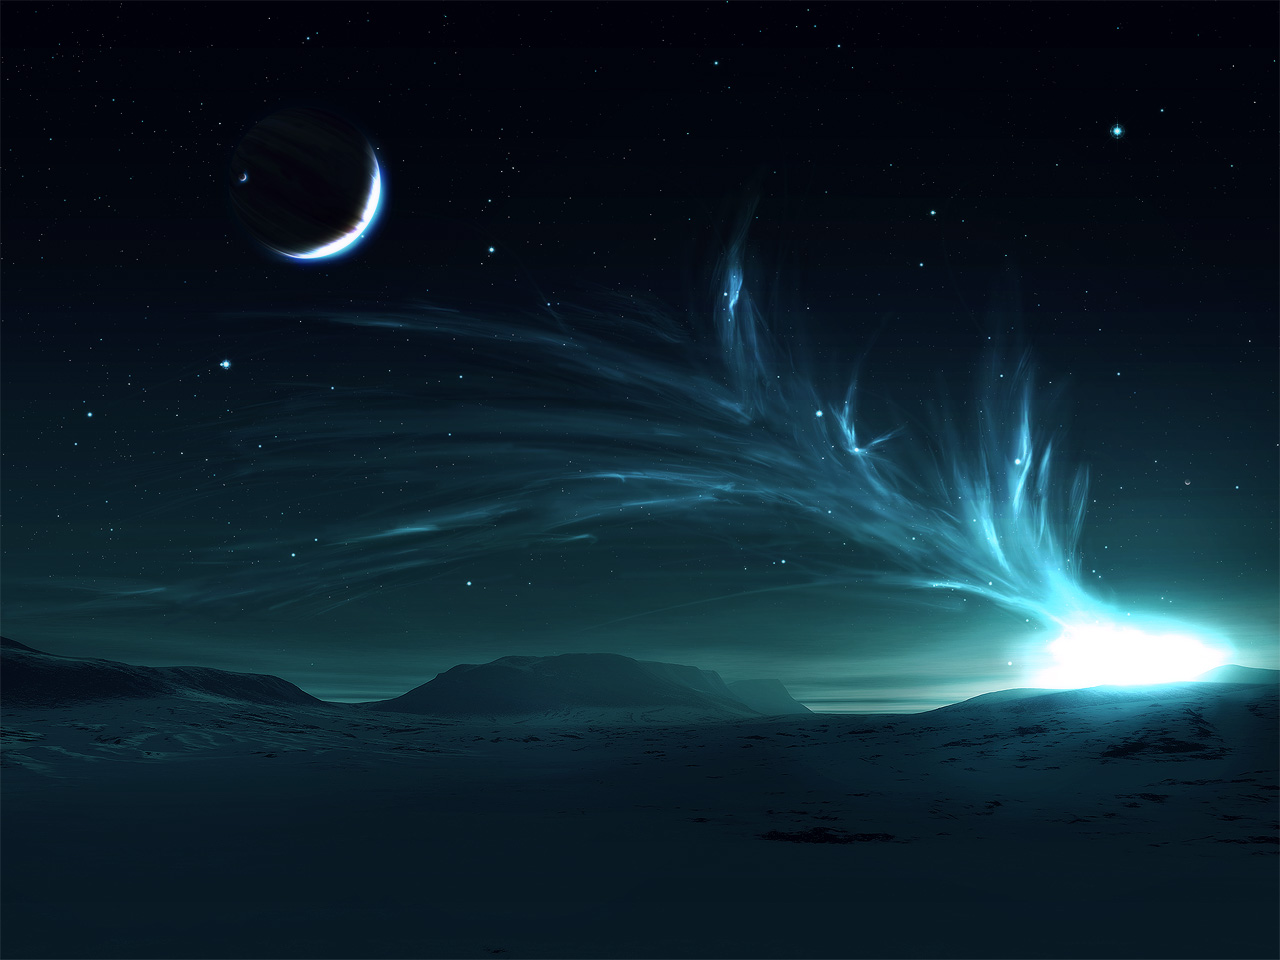 cool astronomy pictures - photo #43